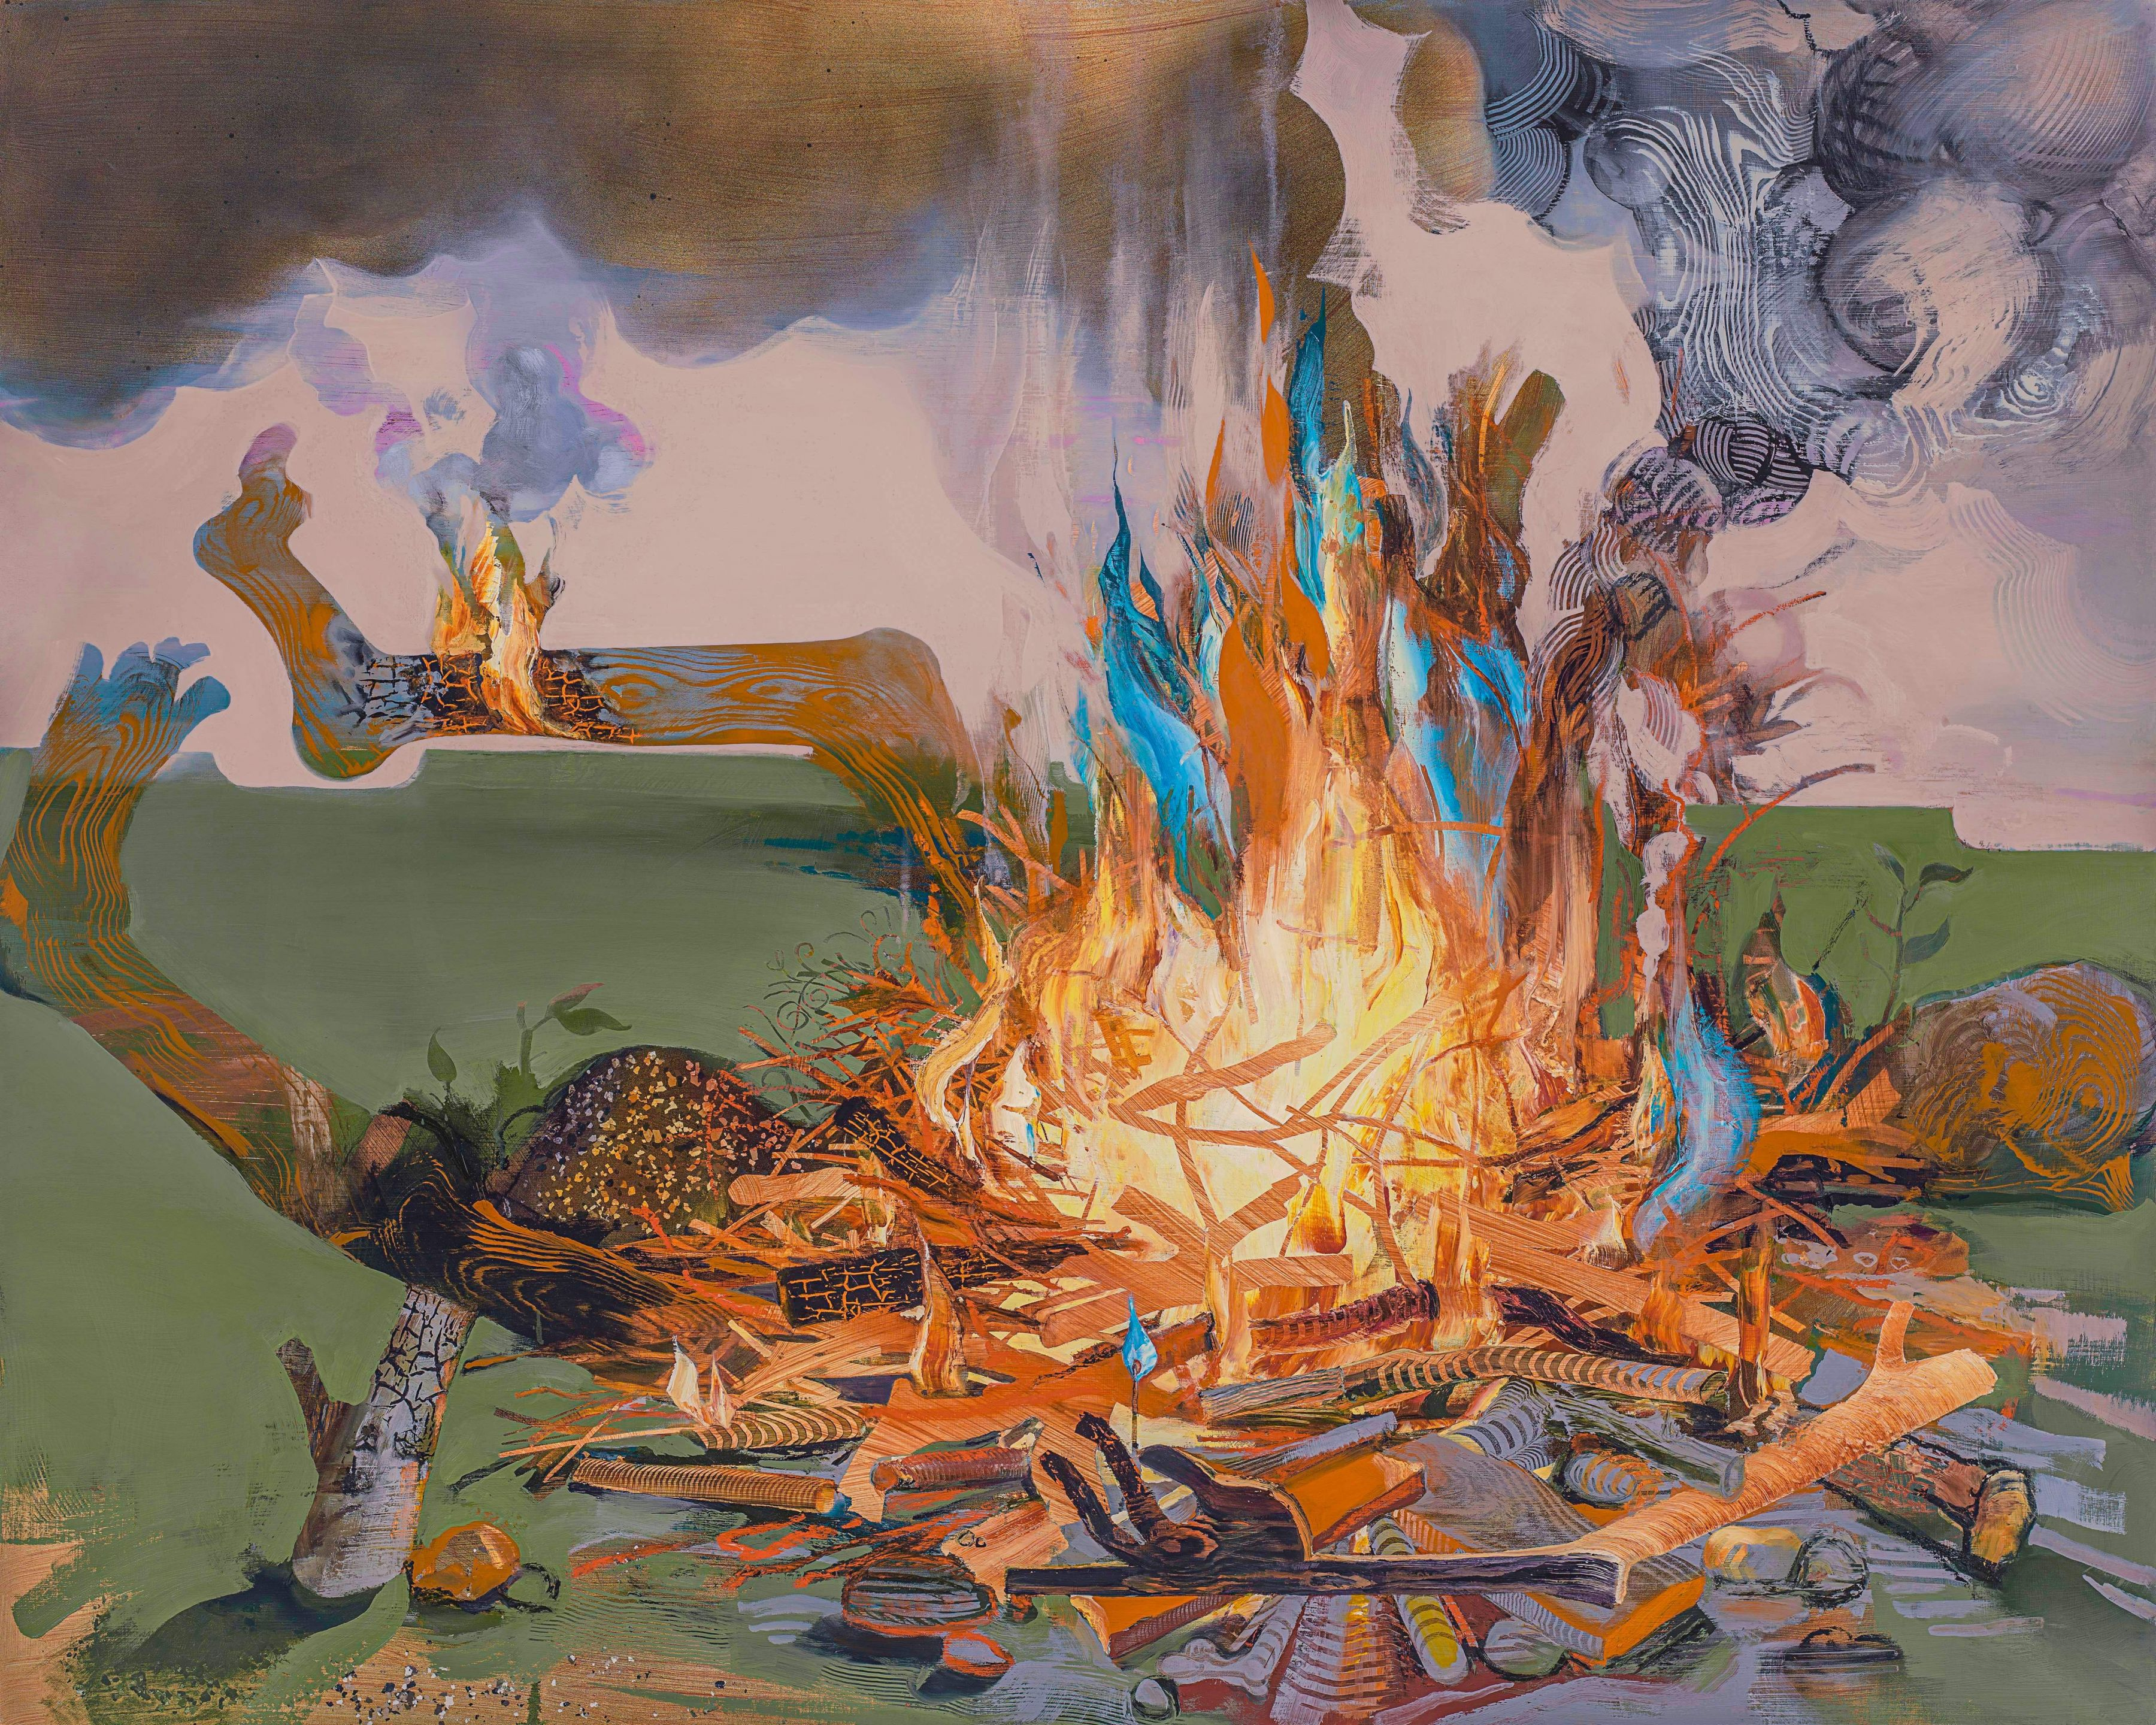 Margaret Curtis, Trial by Fire: The Body Politic, 2017  Oil on panel  48 x 63 inches, body shown aflame as in a campfire.